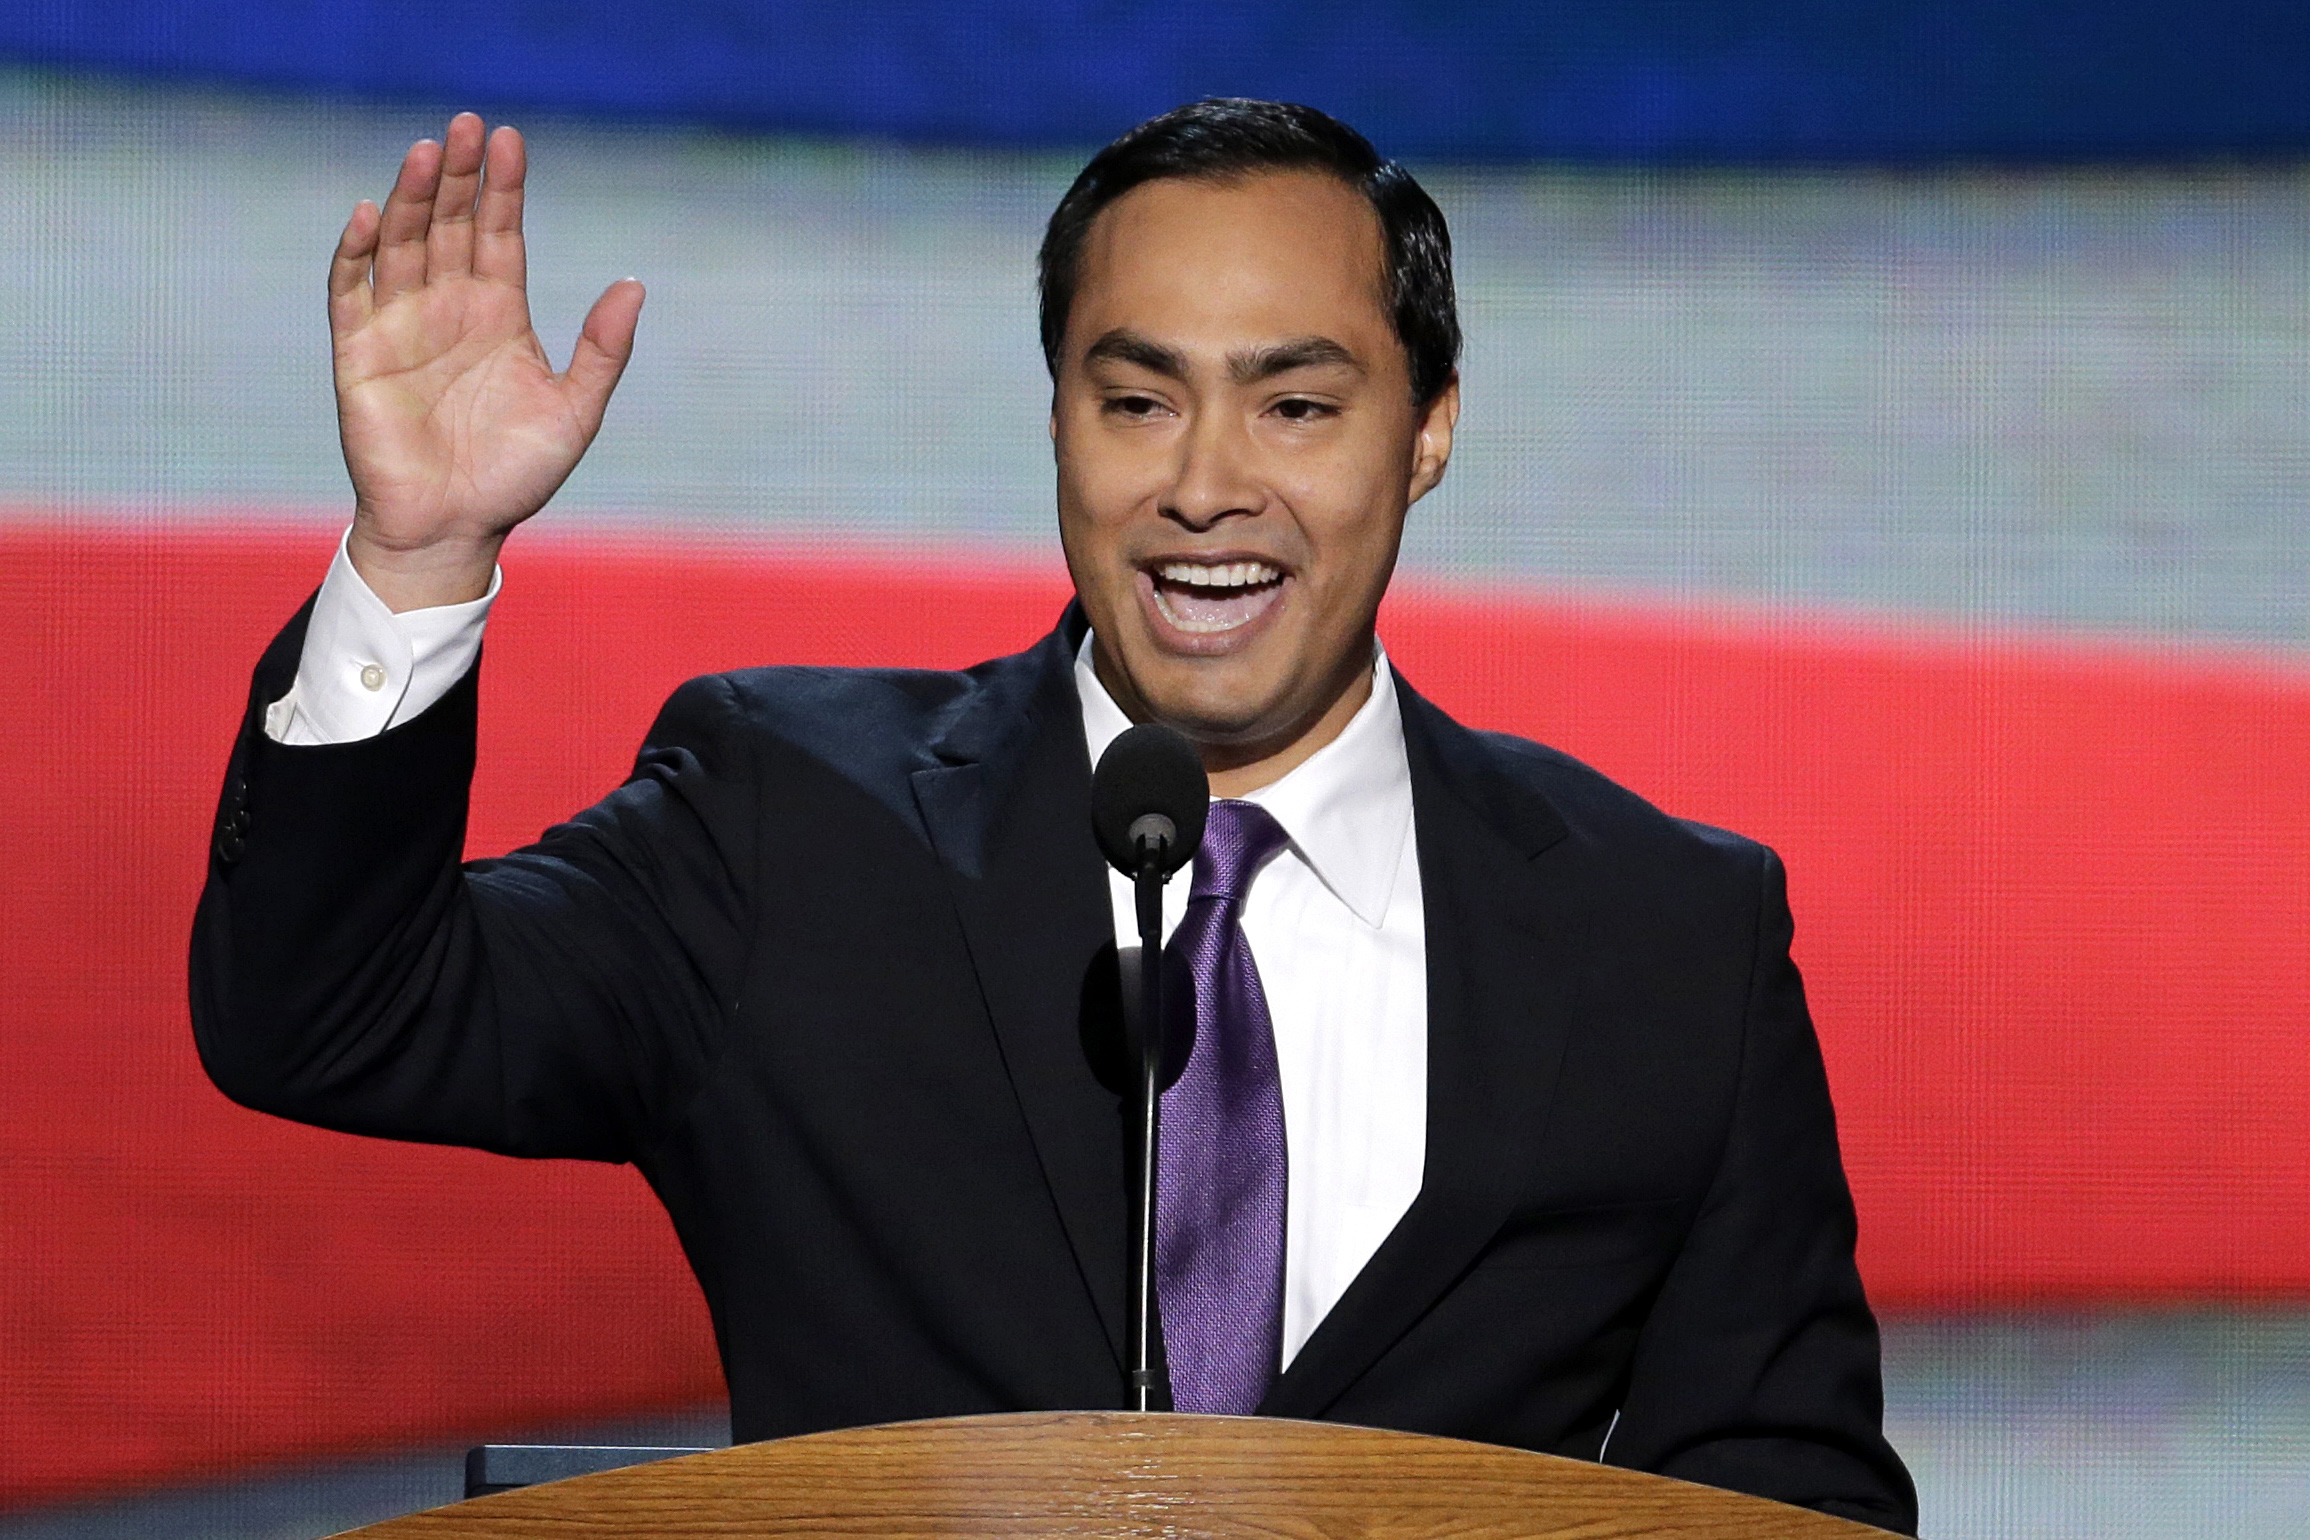 In this Tuesday, Sept. 4, 2012 file photo Joaquin Castro introduces his brother, San Antonio's Mayor Julian Castro to the Democratic National Convention in Charlotte, N.C. (AP Photo/J. Scott Applewhite, File)